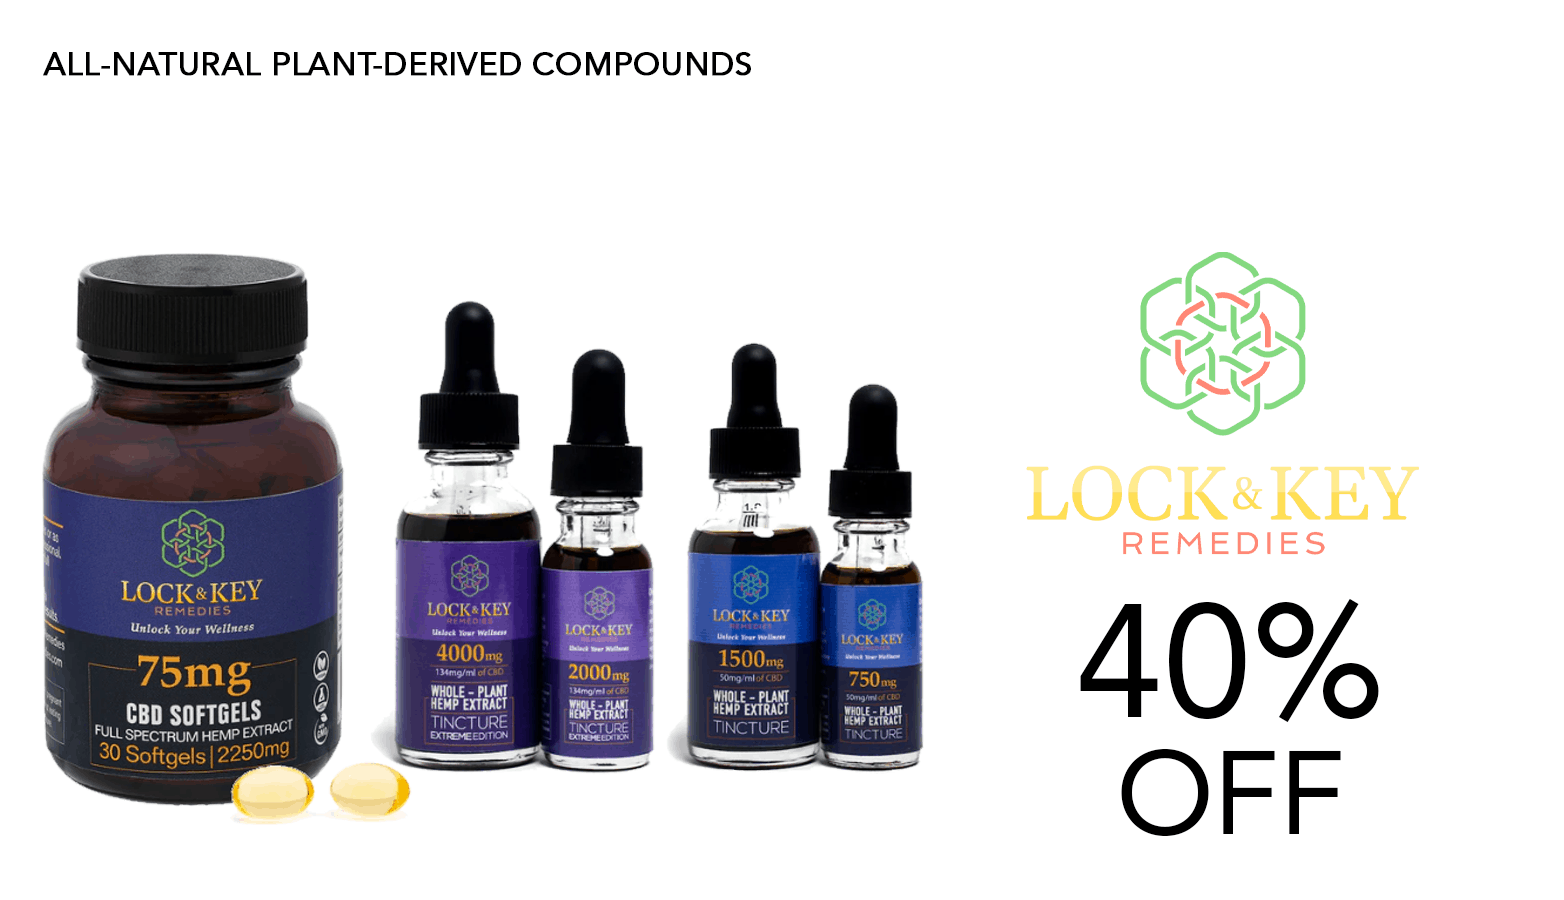 LocK and Key Remedies Inc CBD Coupon Code 40 Percent Offer Website